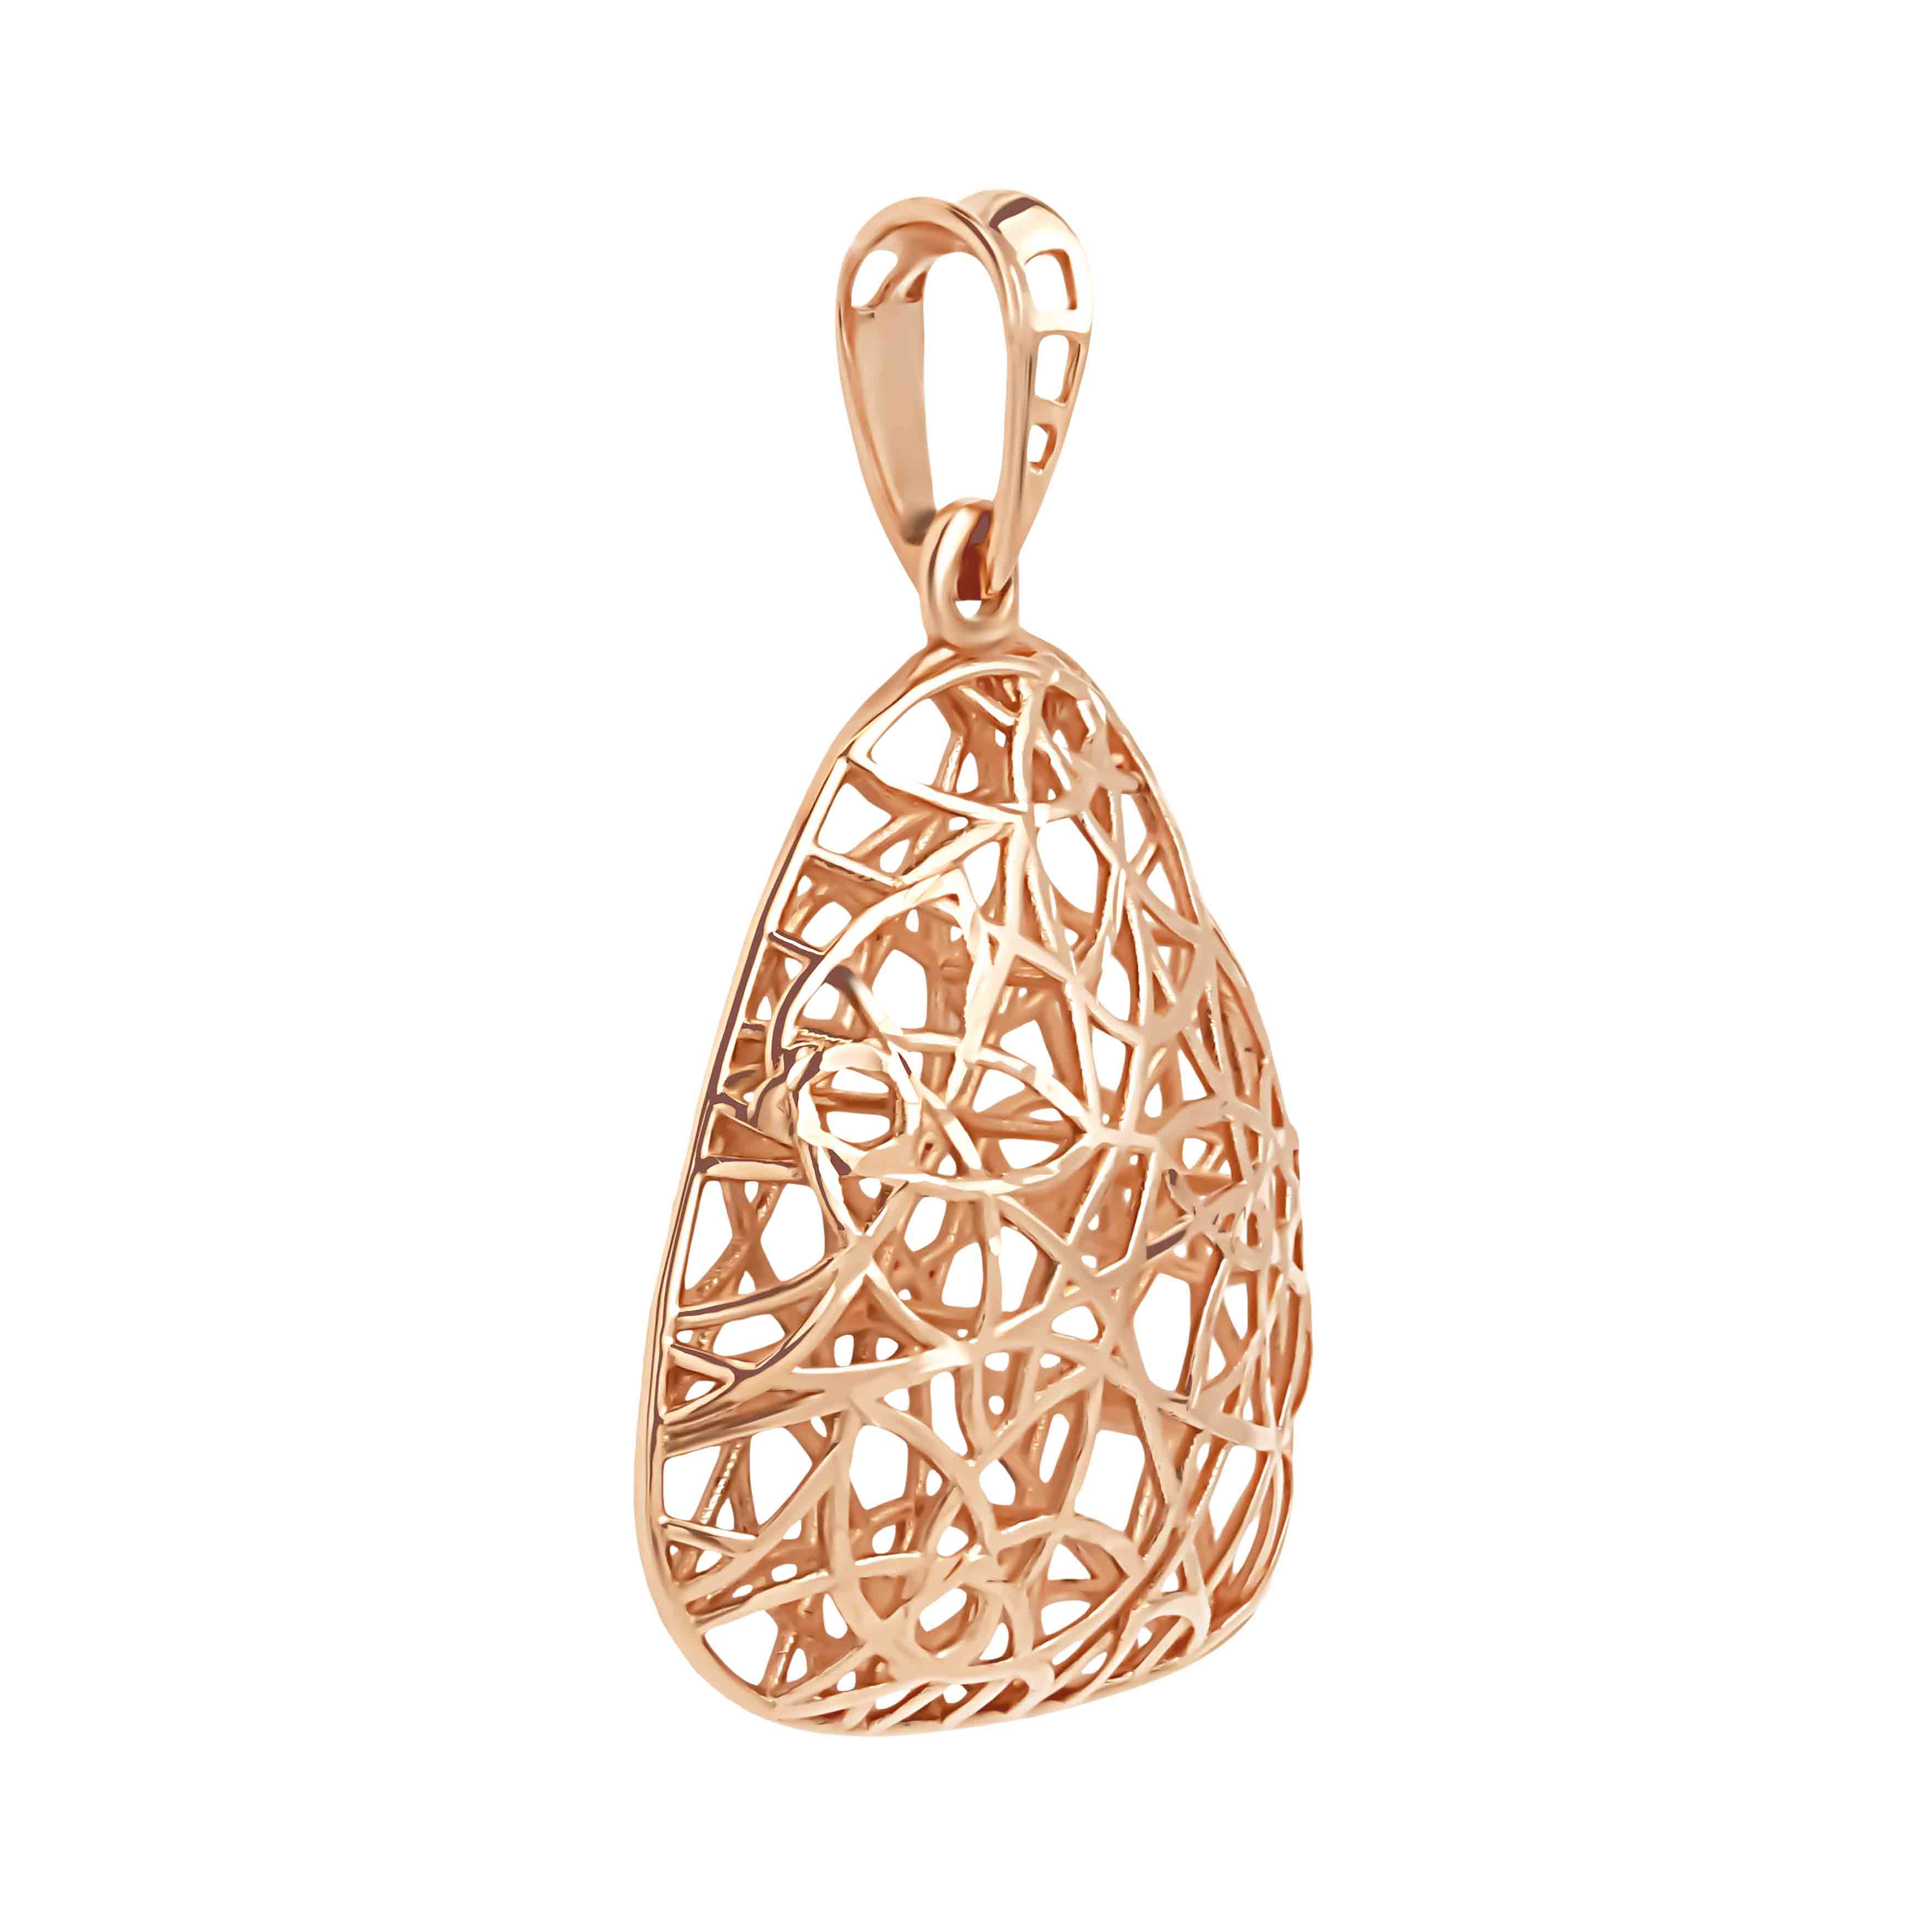 'Fashion Web' pendant in 585 rose gold. View 2